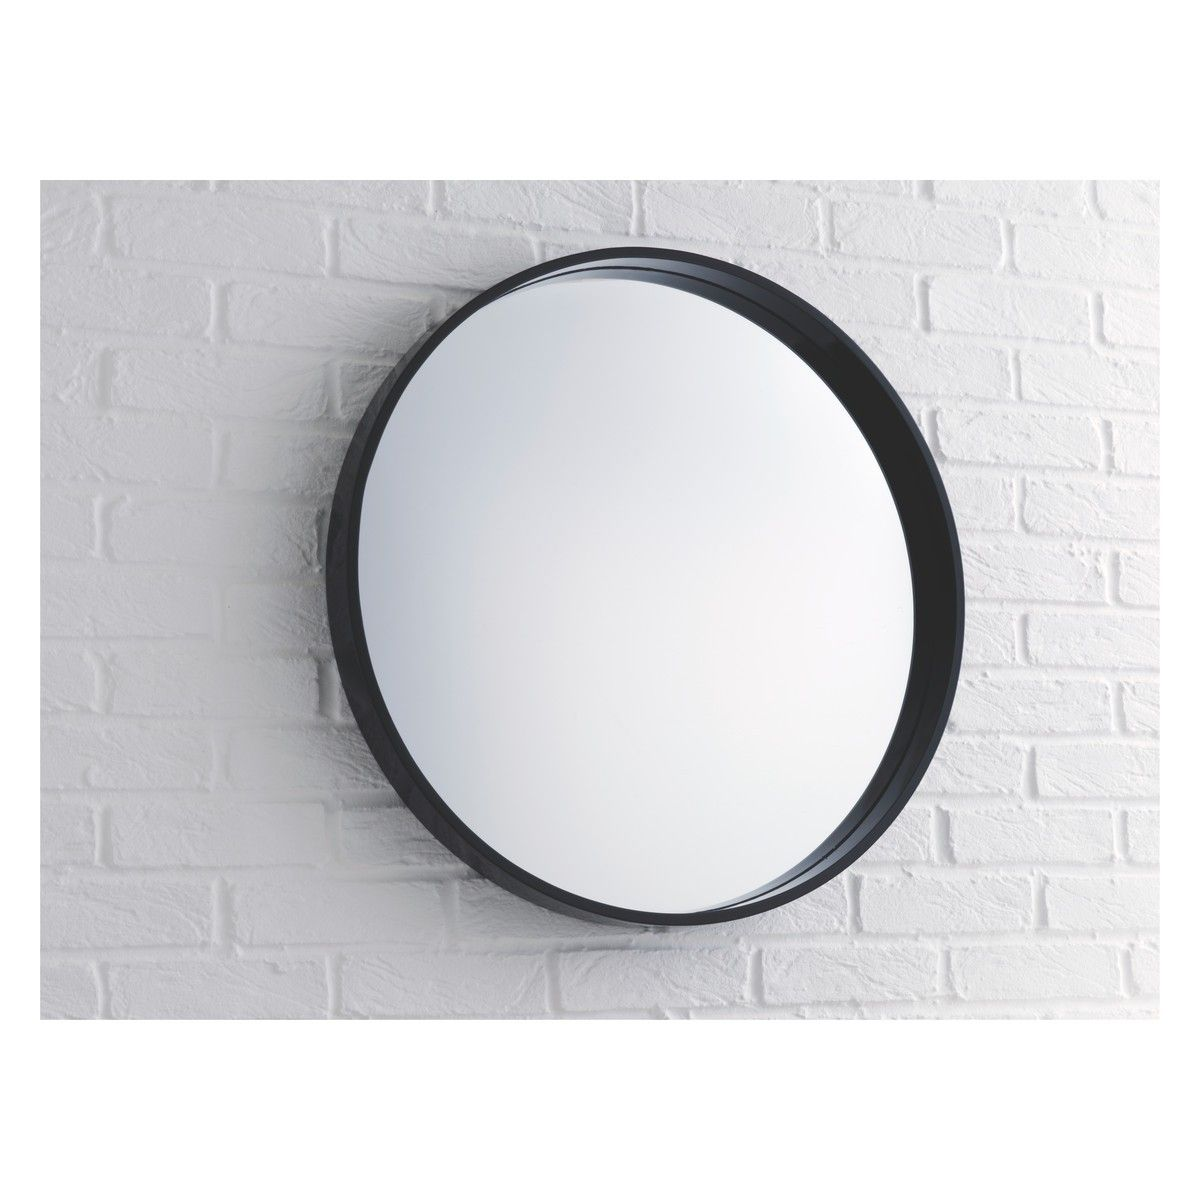 Aimee Black Round Wall Mirror D65cm Buy Now At Habitat Uk